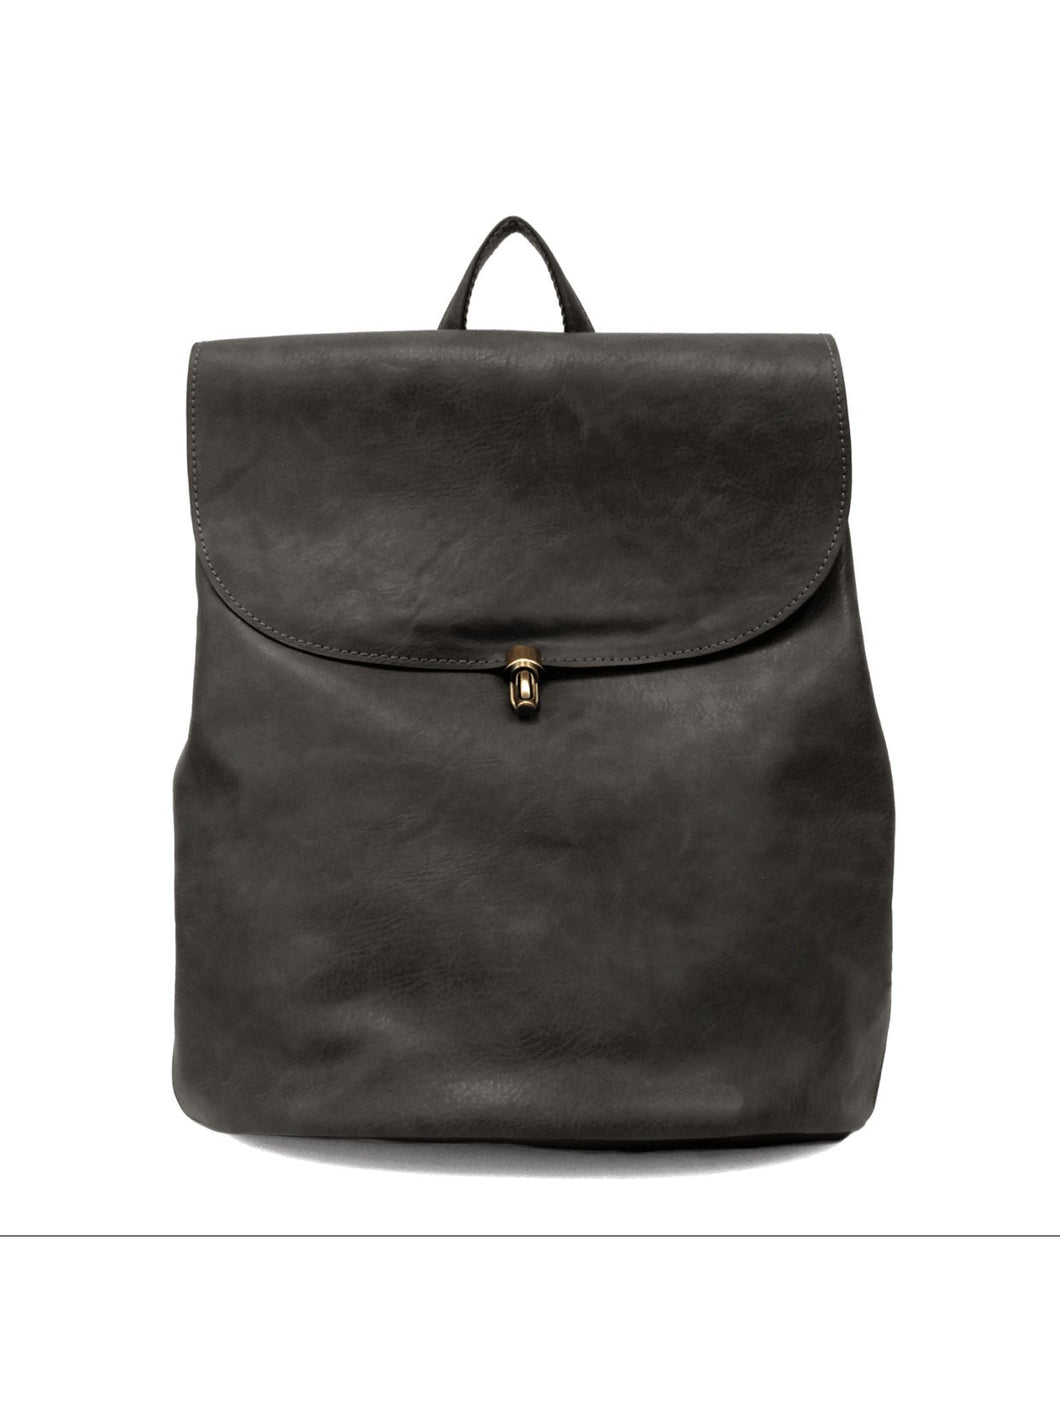 THE COLETTE BACKPACKS - 3 colors